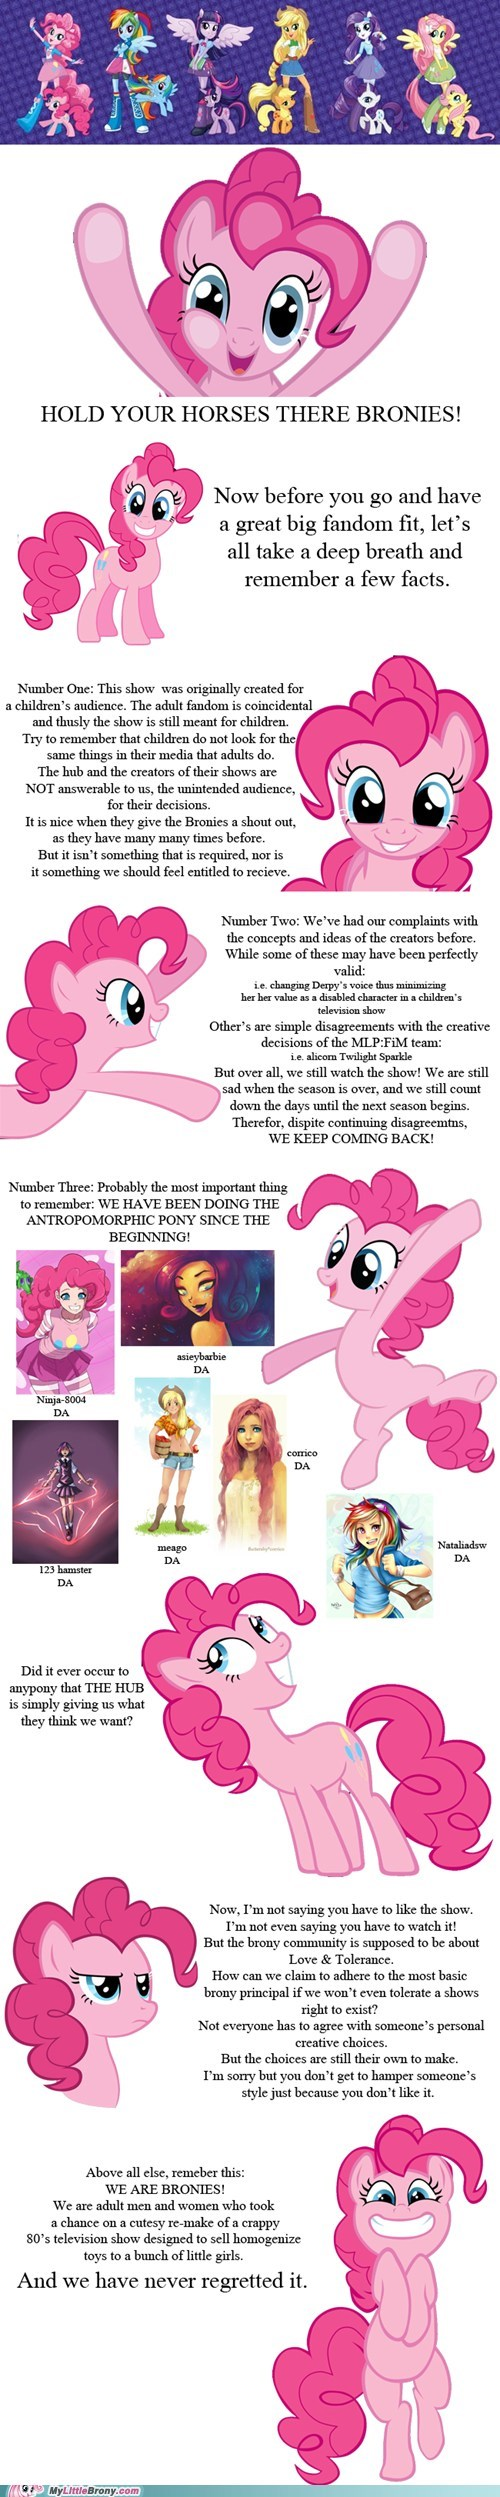 equestria girls Bronies love and tolerate fandom - 7108320256